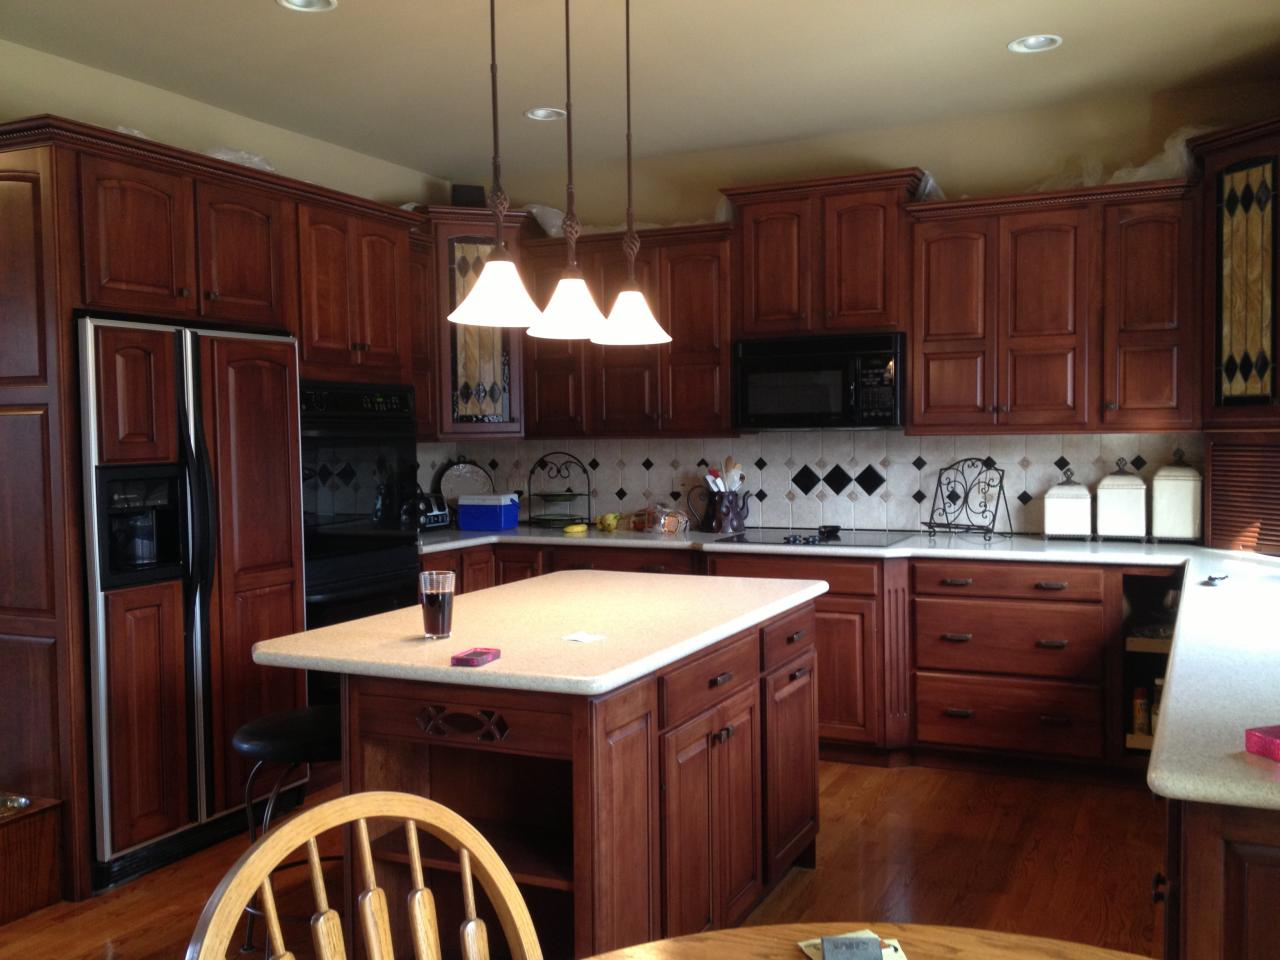 Staining Unfinished Kitchen Cabinets Staining Oak Cabinets Image Of Refinishing Oak Kitchen